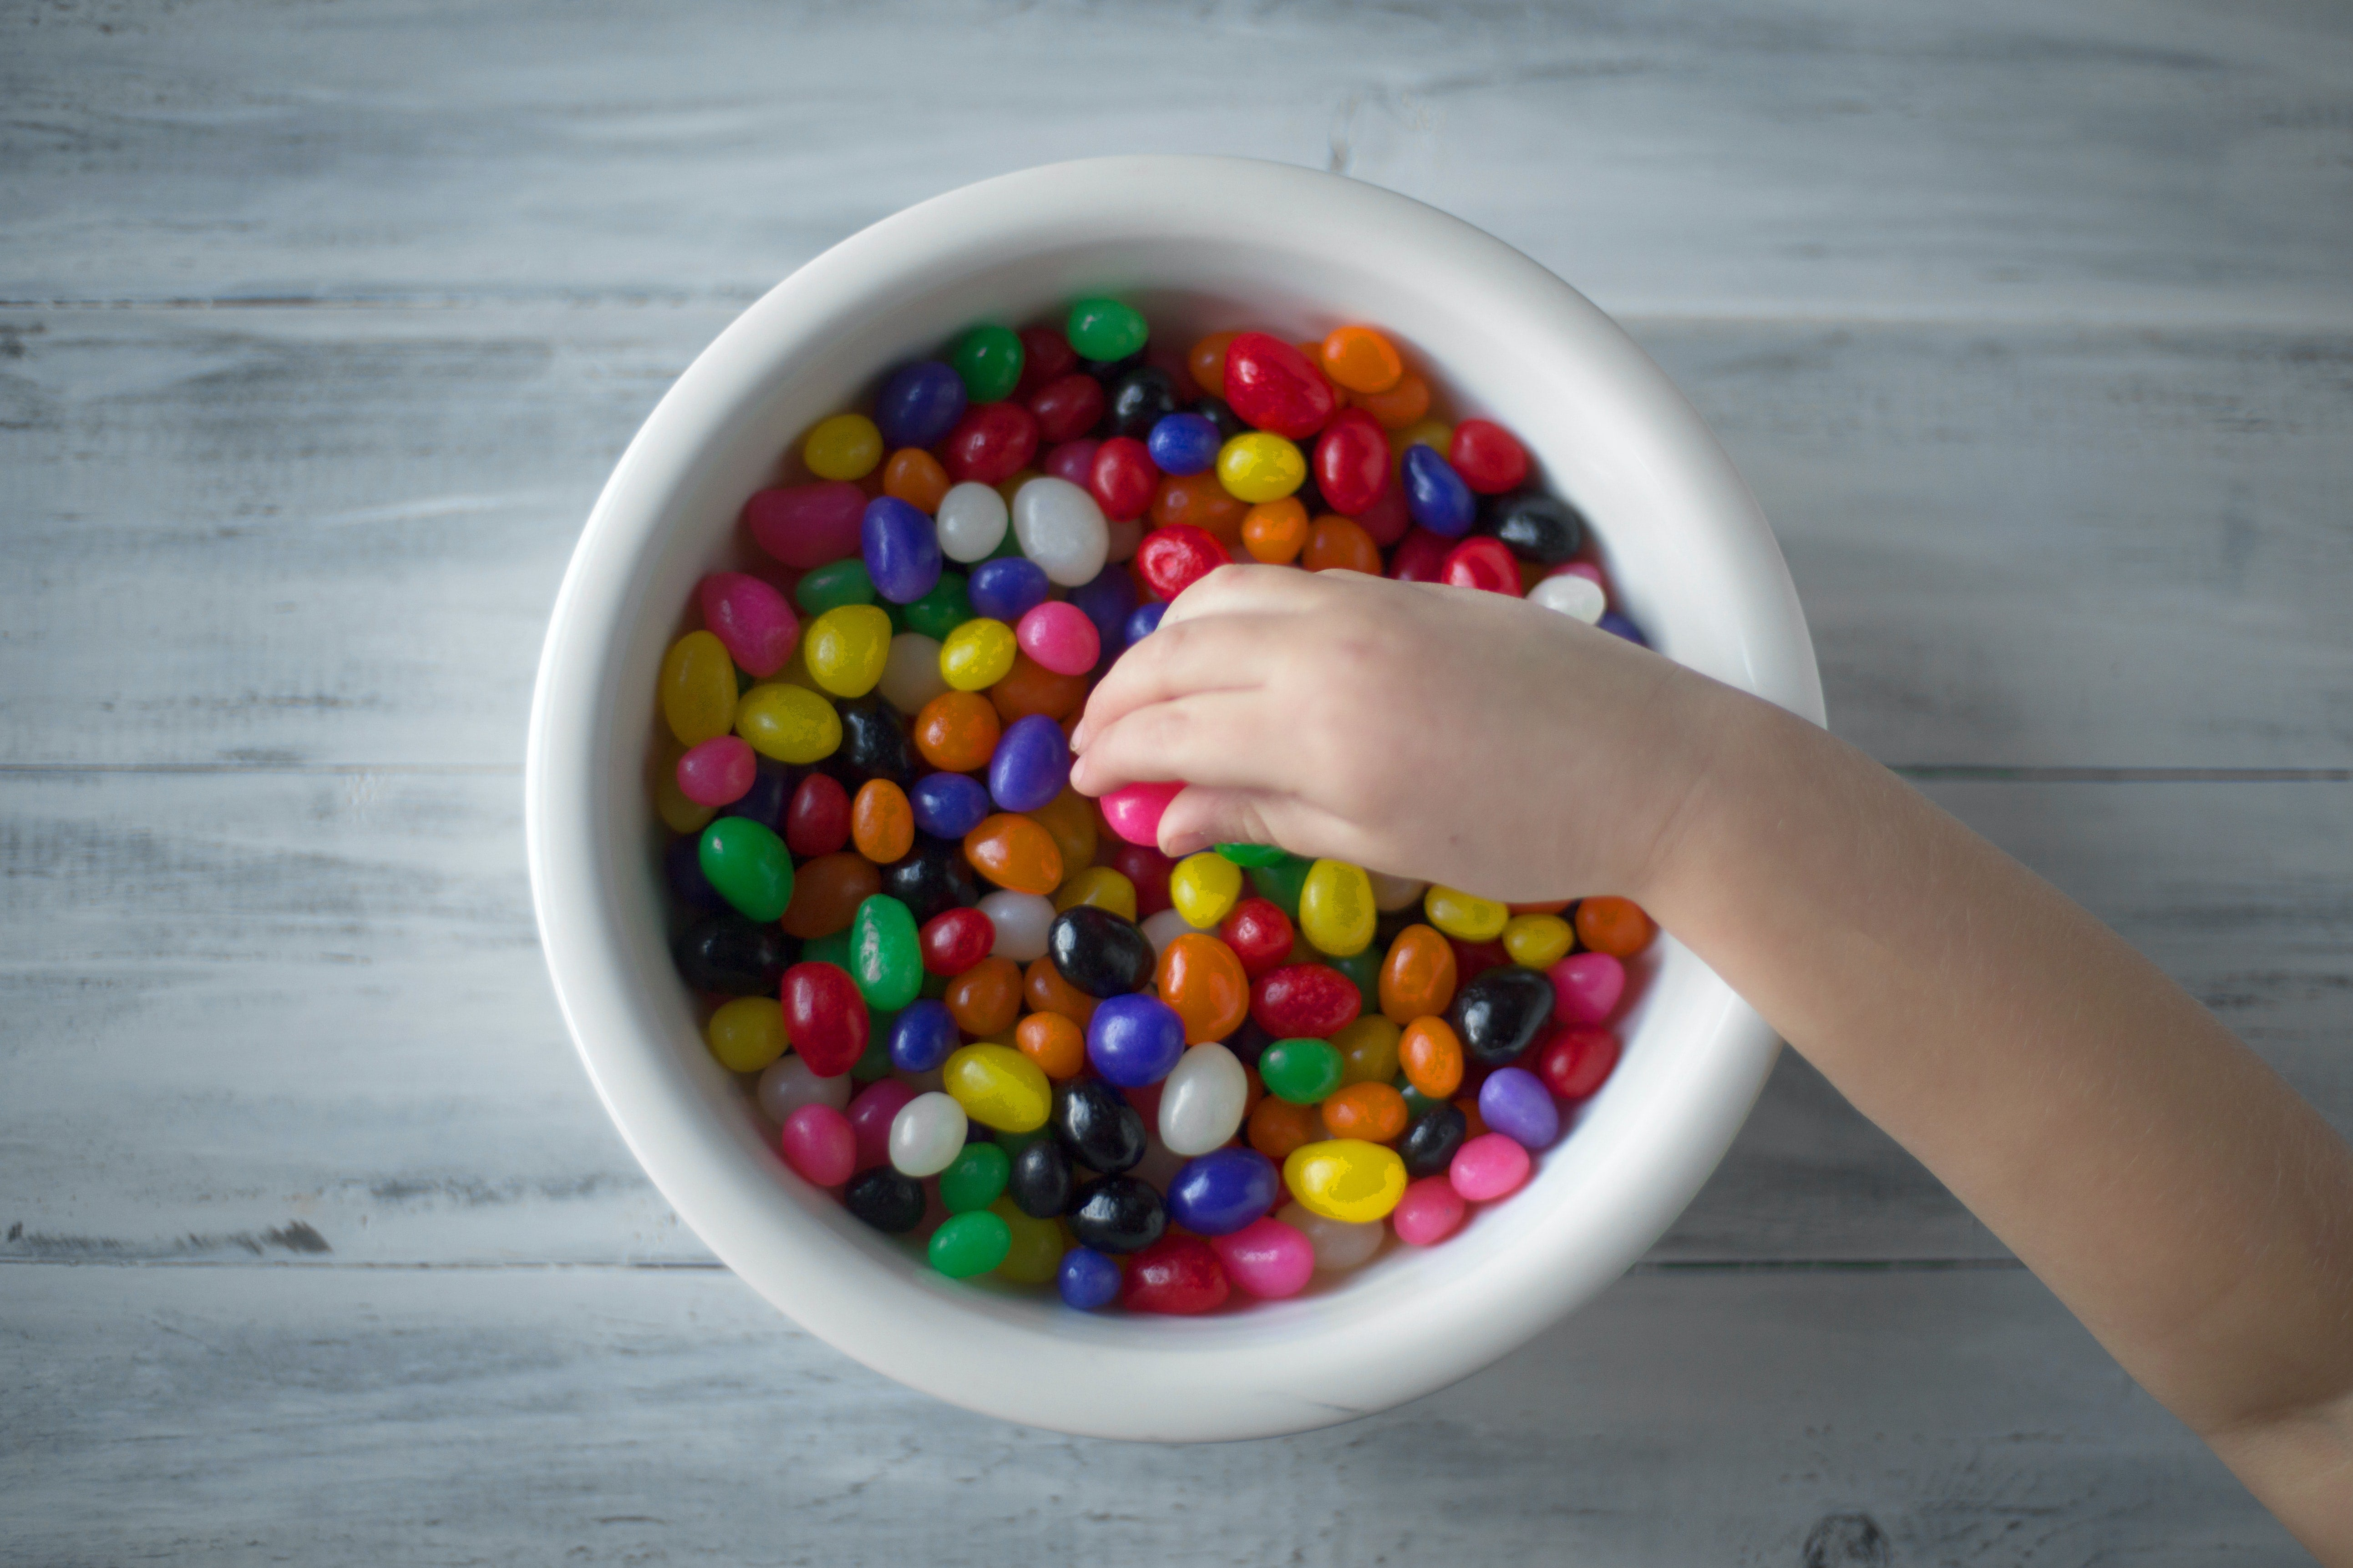 Child grabbing colourful sweets jelly beans